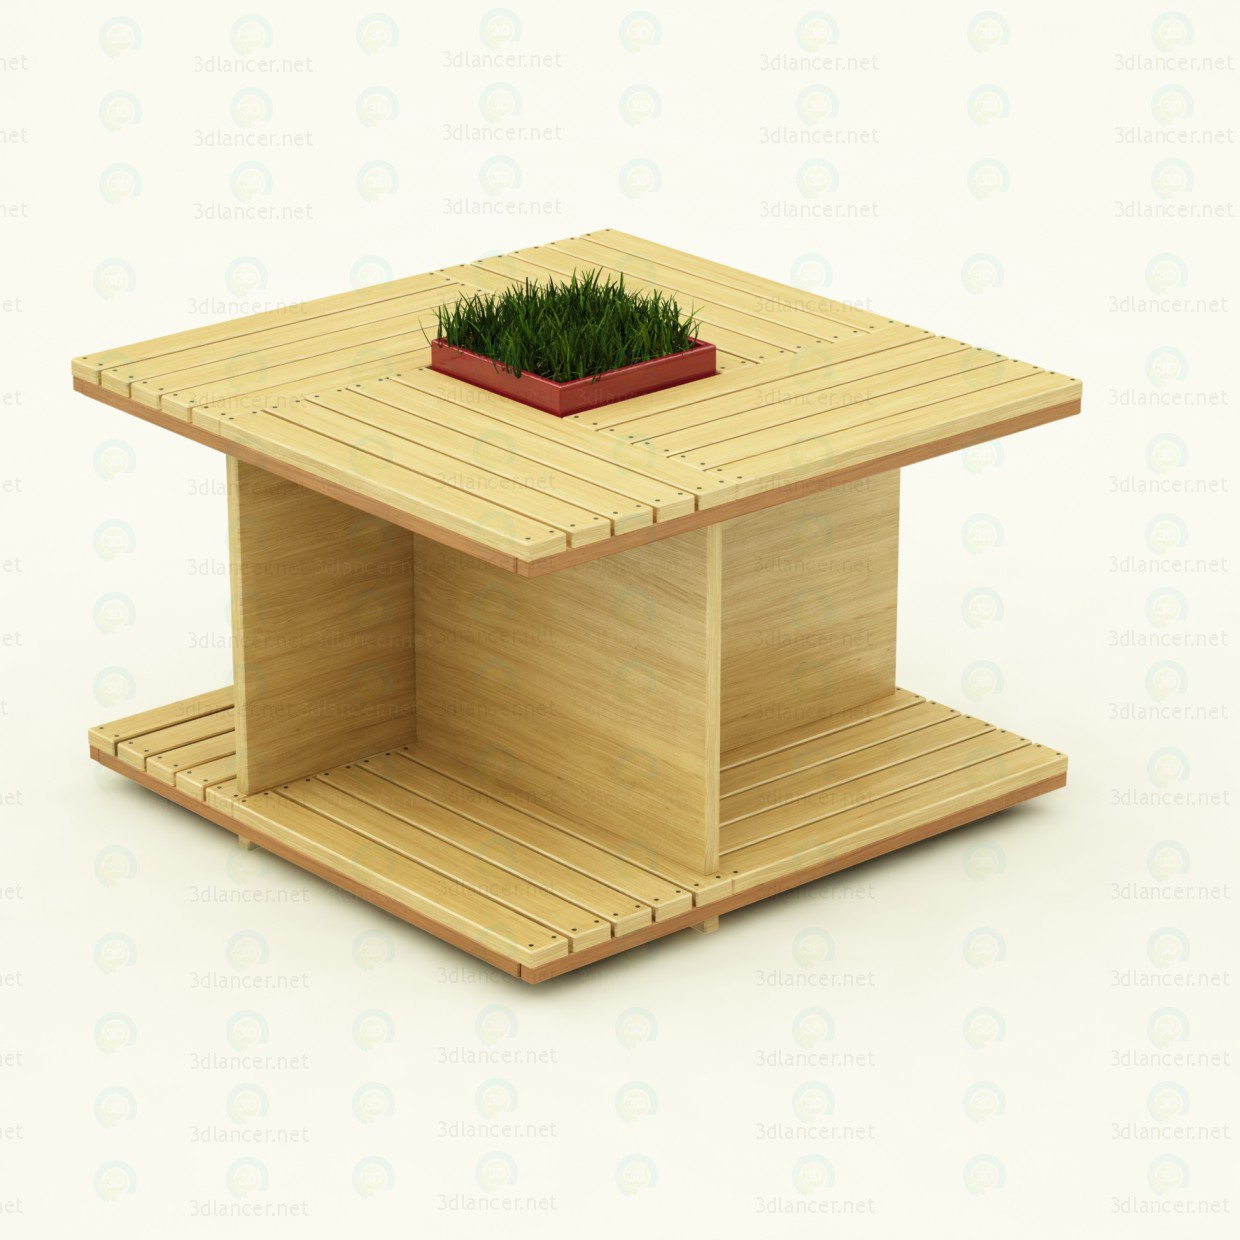 3d model Wooden table for the garden - preview